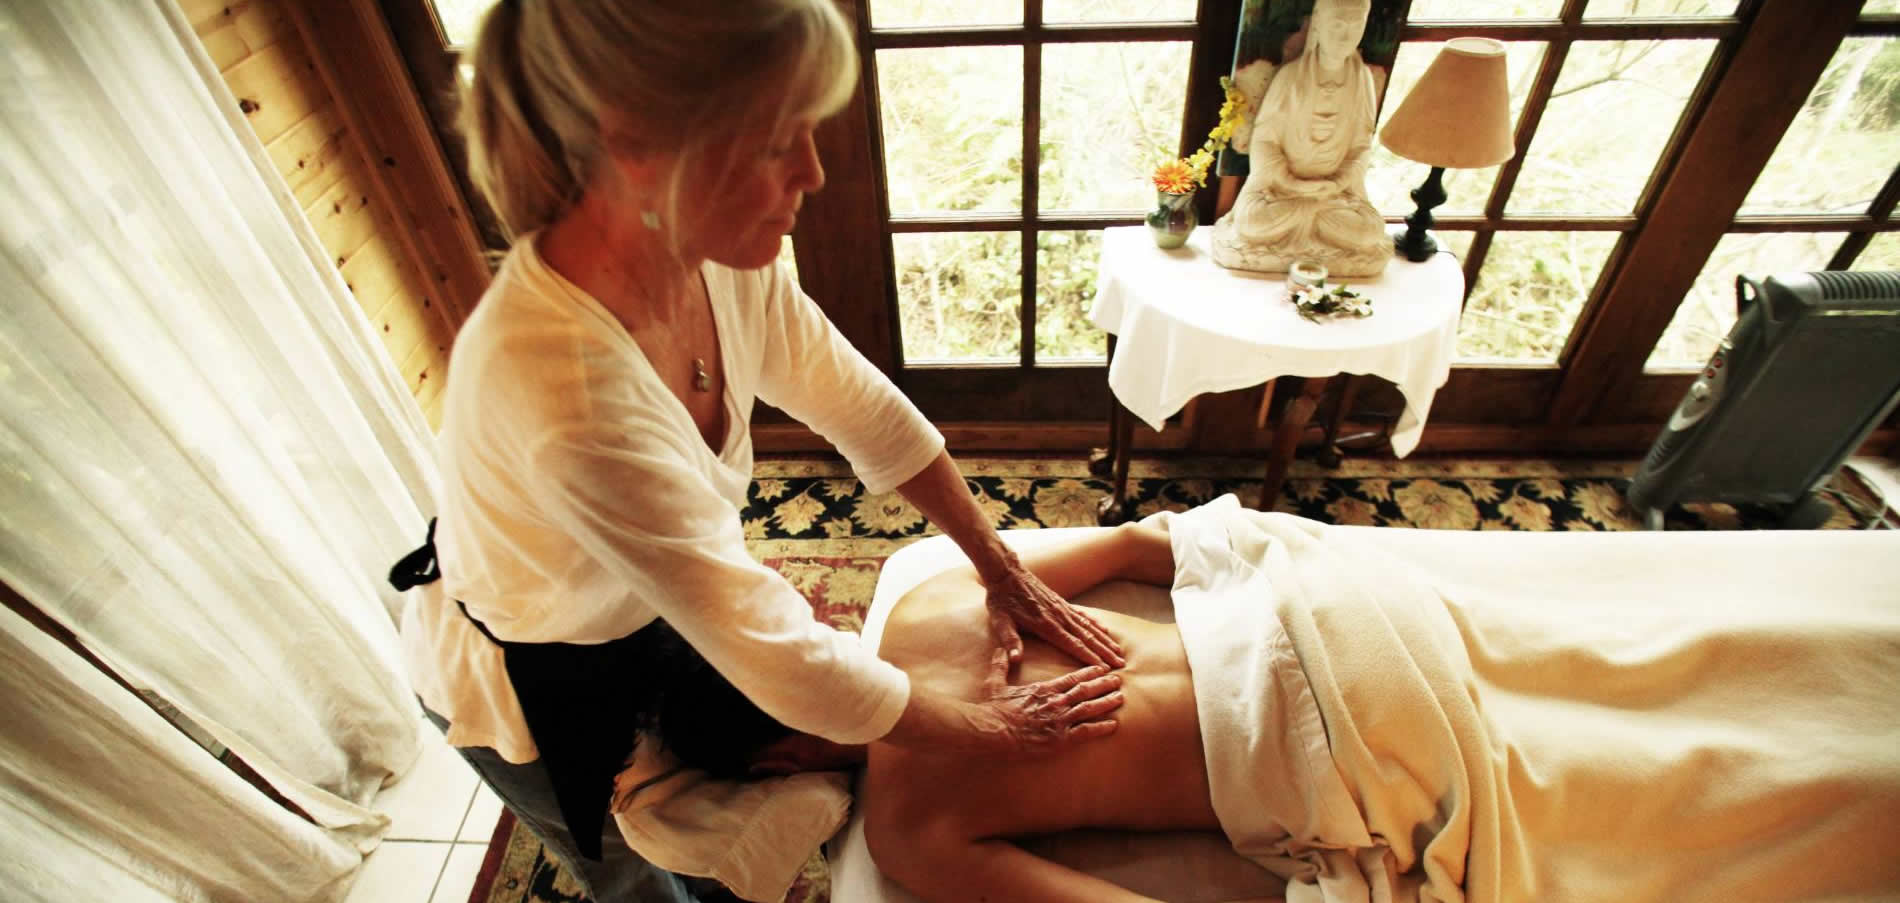 mendocino spa services massage in the forest